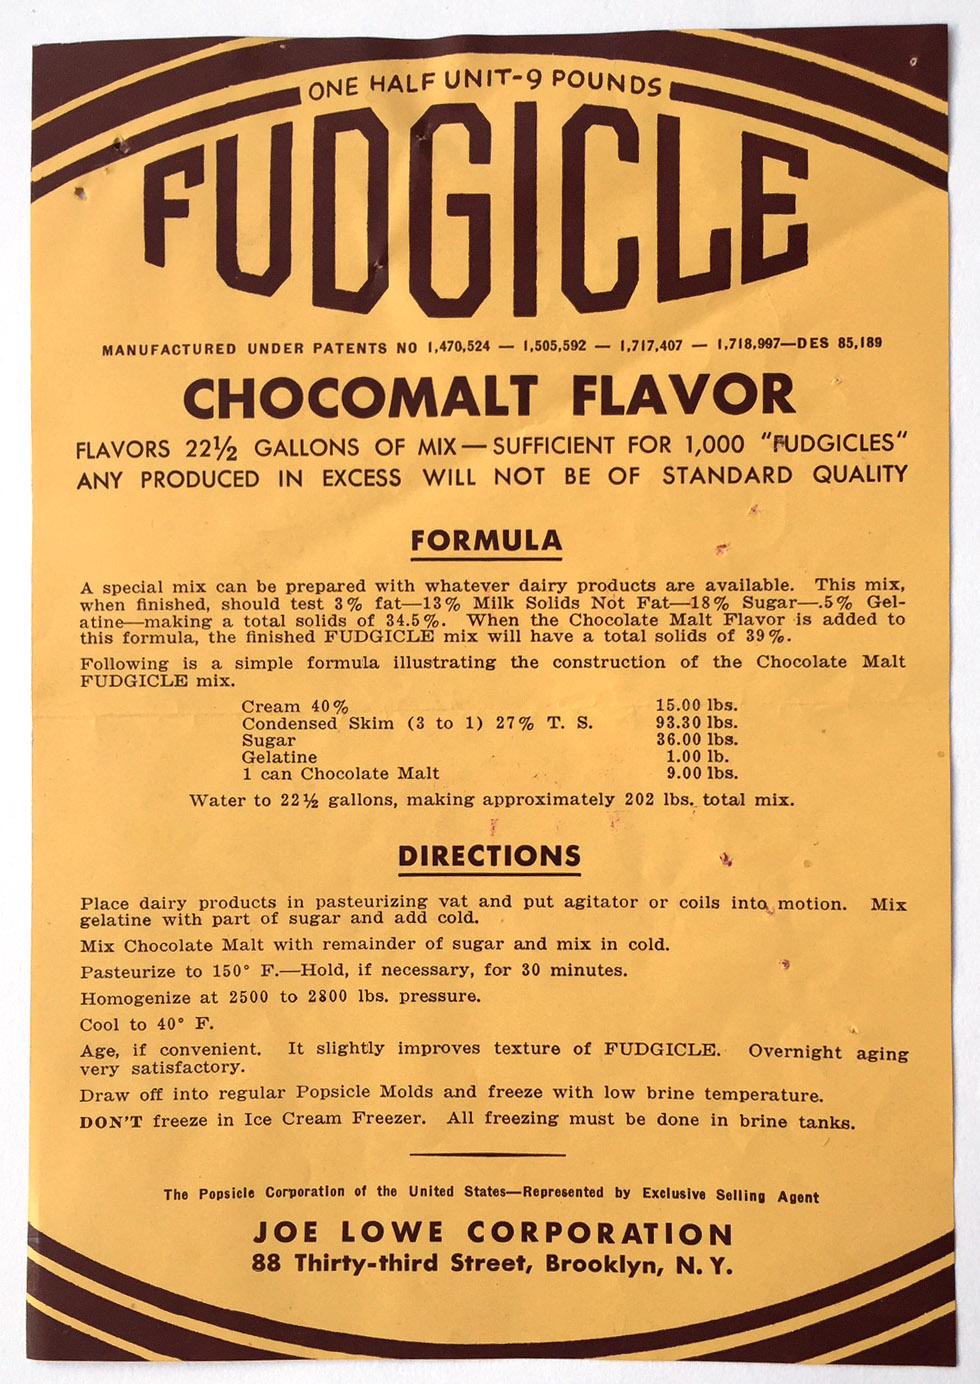 Fudgicle recipe leaflet sent to Department of Health in 1933.Department of Health collection, NYC Municipal Archives.